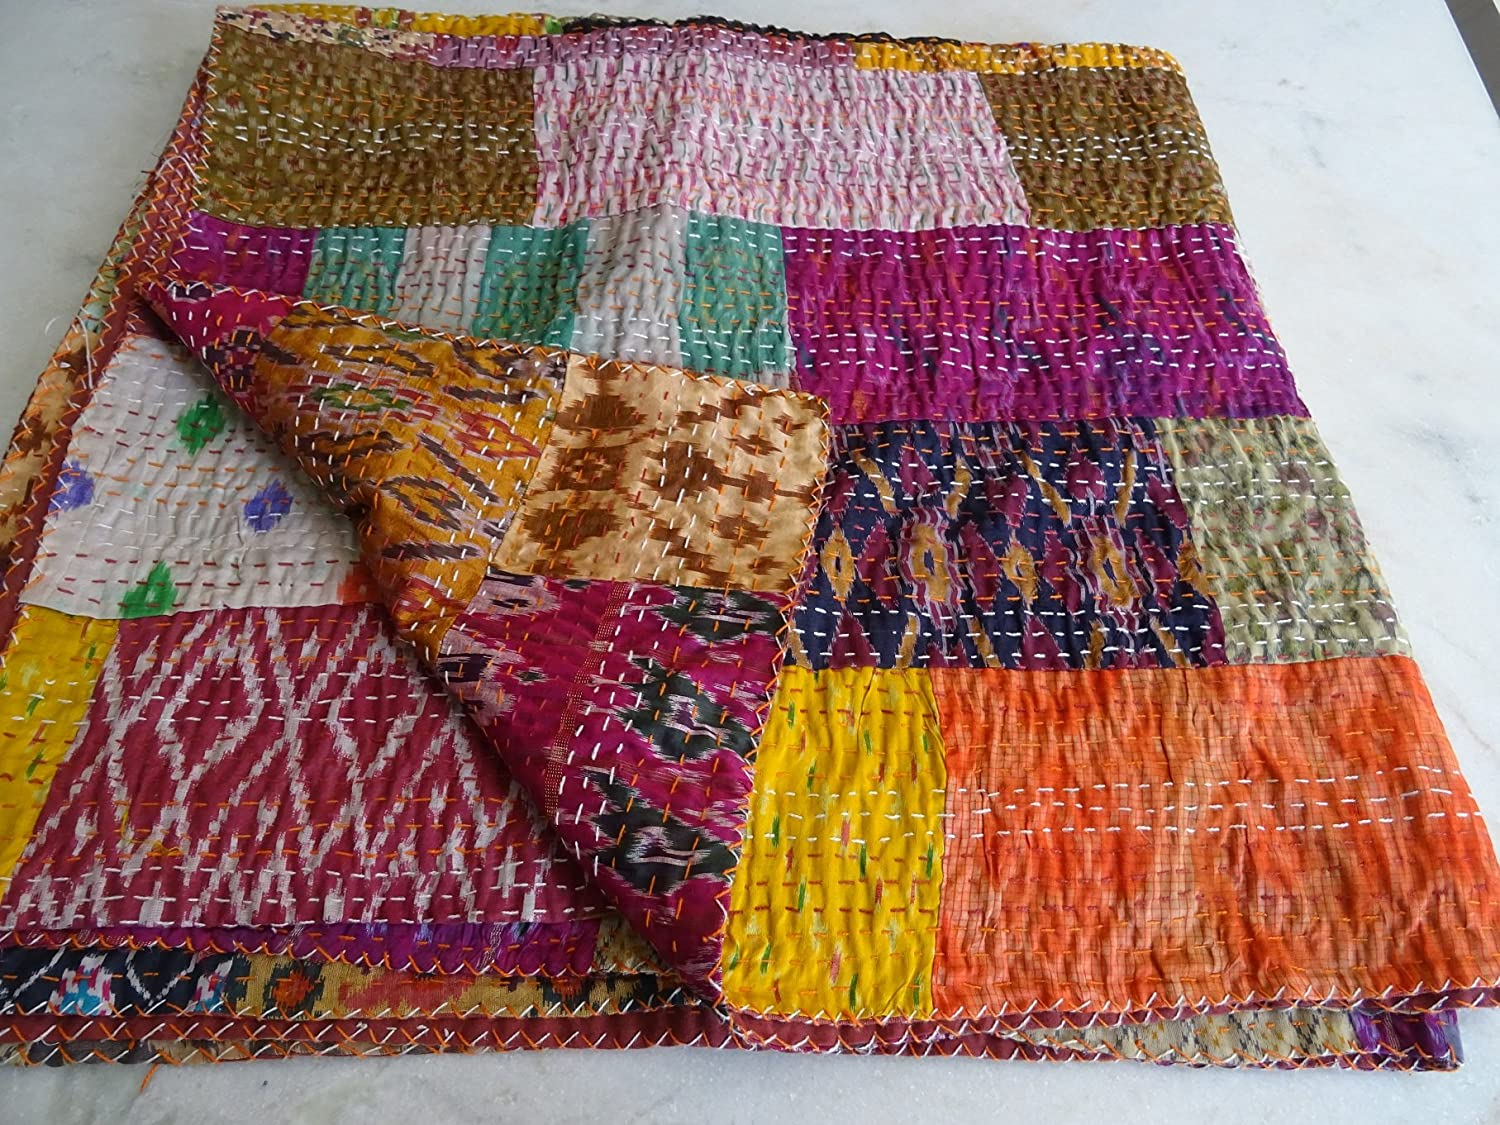 Indian Kantha Quilt, Patola Silk Patchwork Kantha Blanket, Kantha Bohemian Bedding, Reversible Bedsheet / Blanket Decorative Vintage Ethinic 009 Tribal Asian Textiles